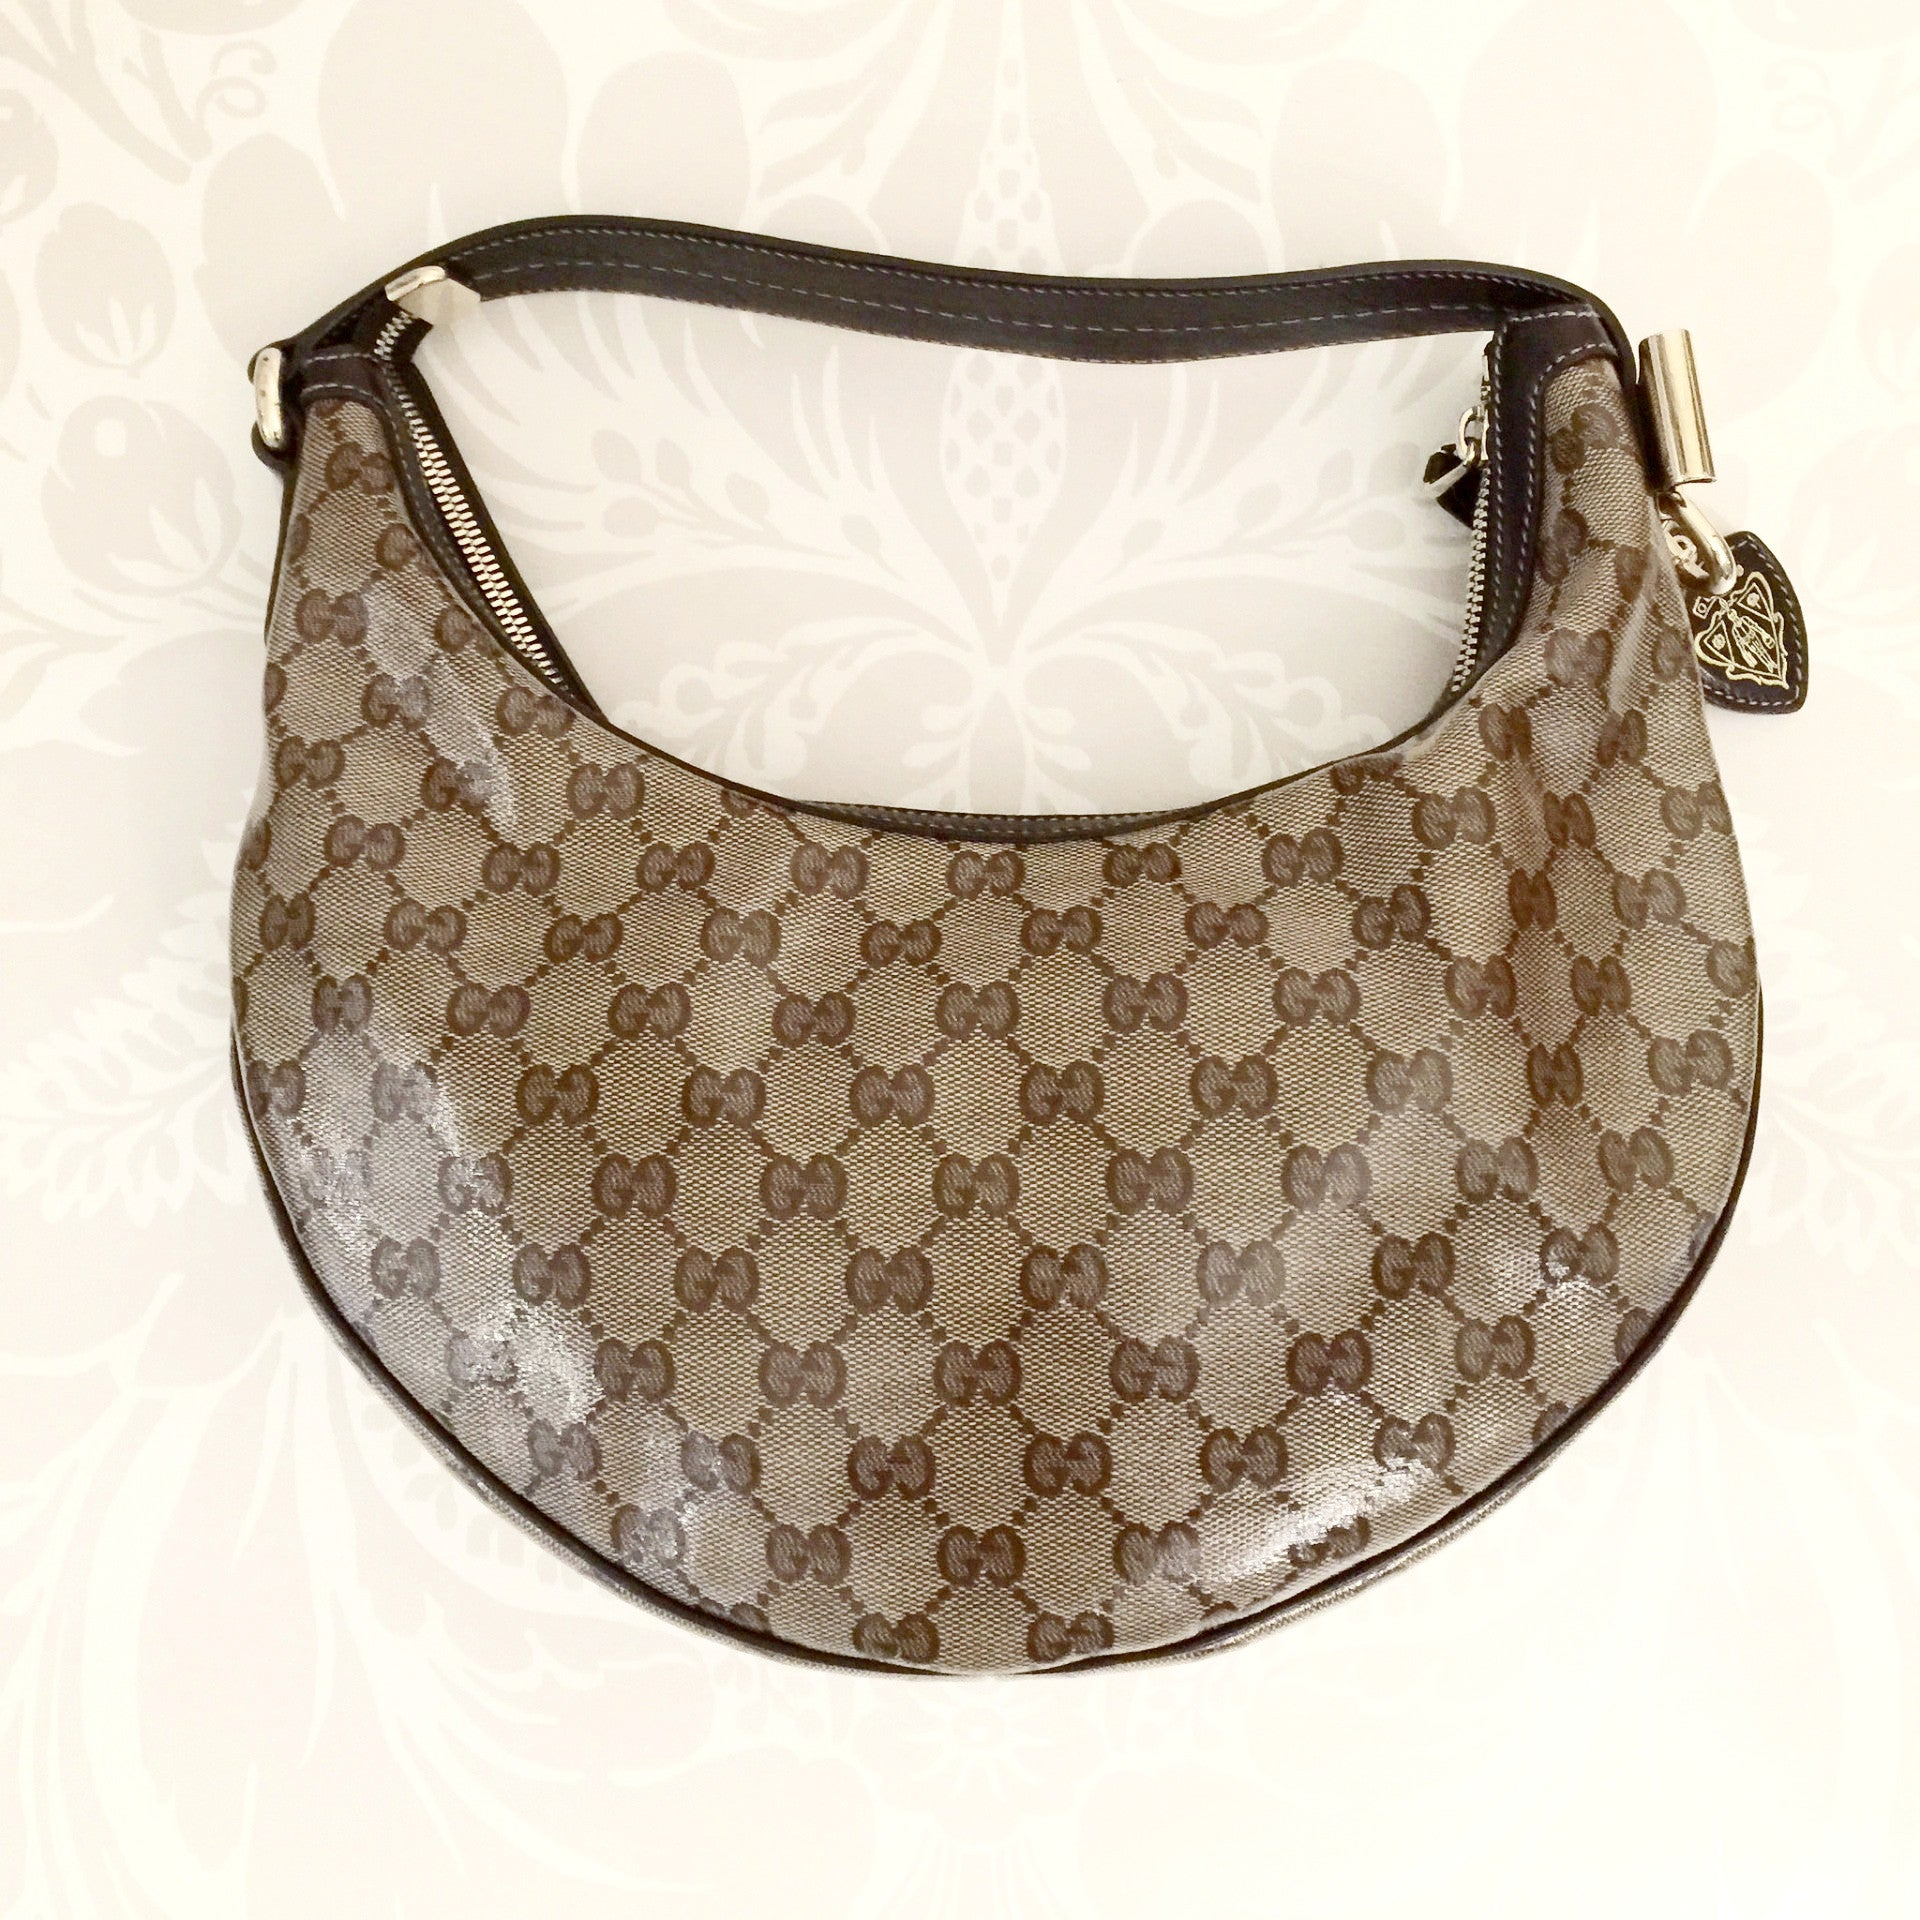 Authentic GUCCI Crystal Small Hobo